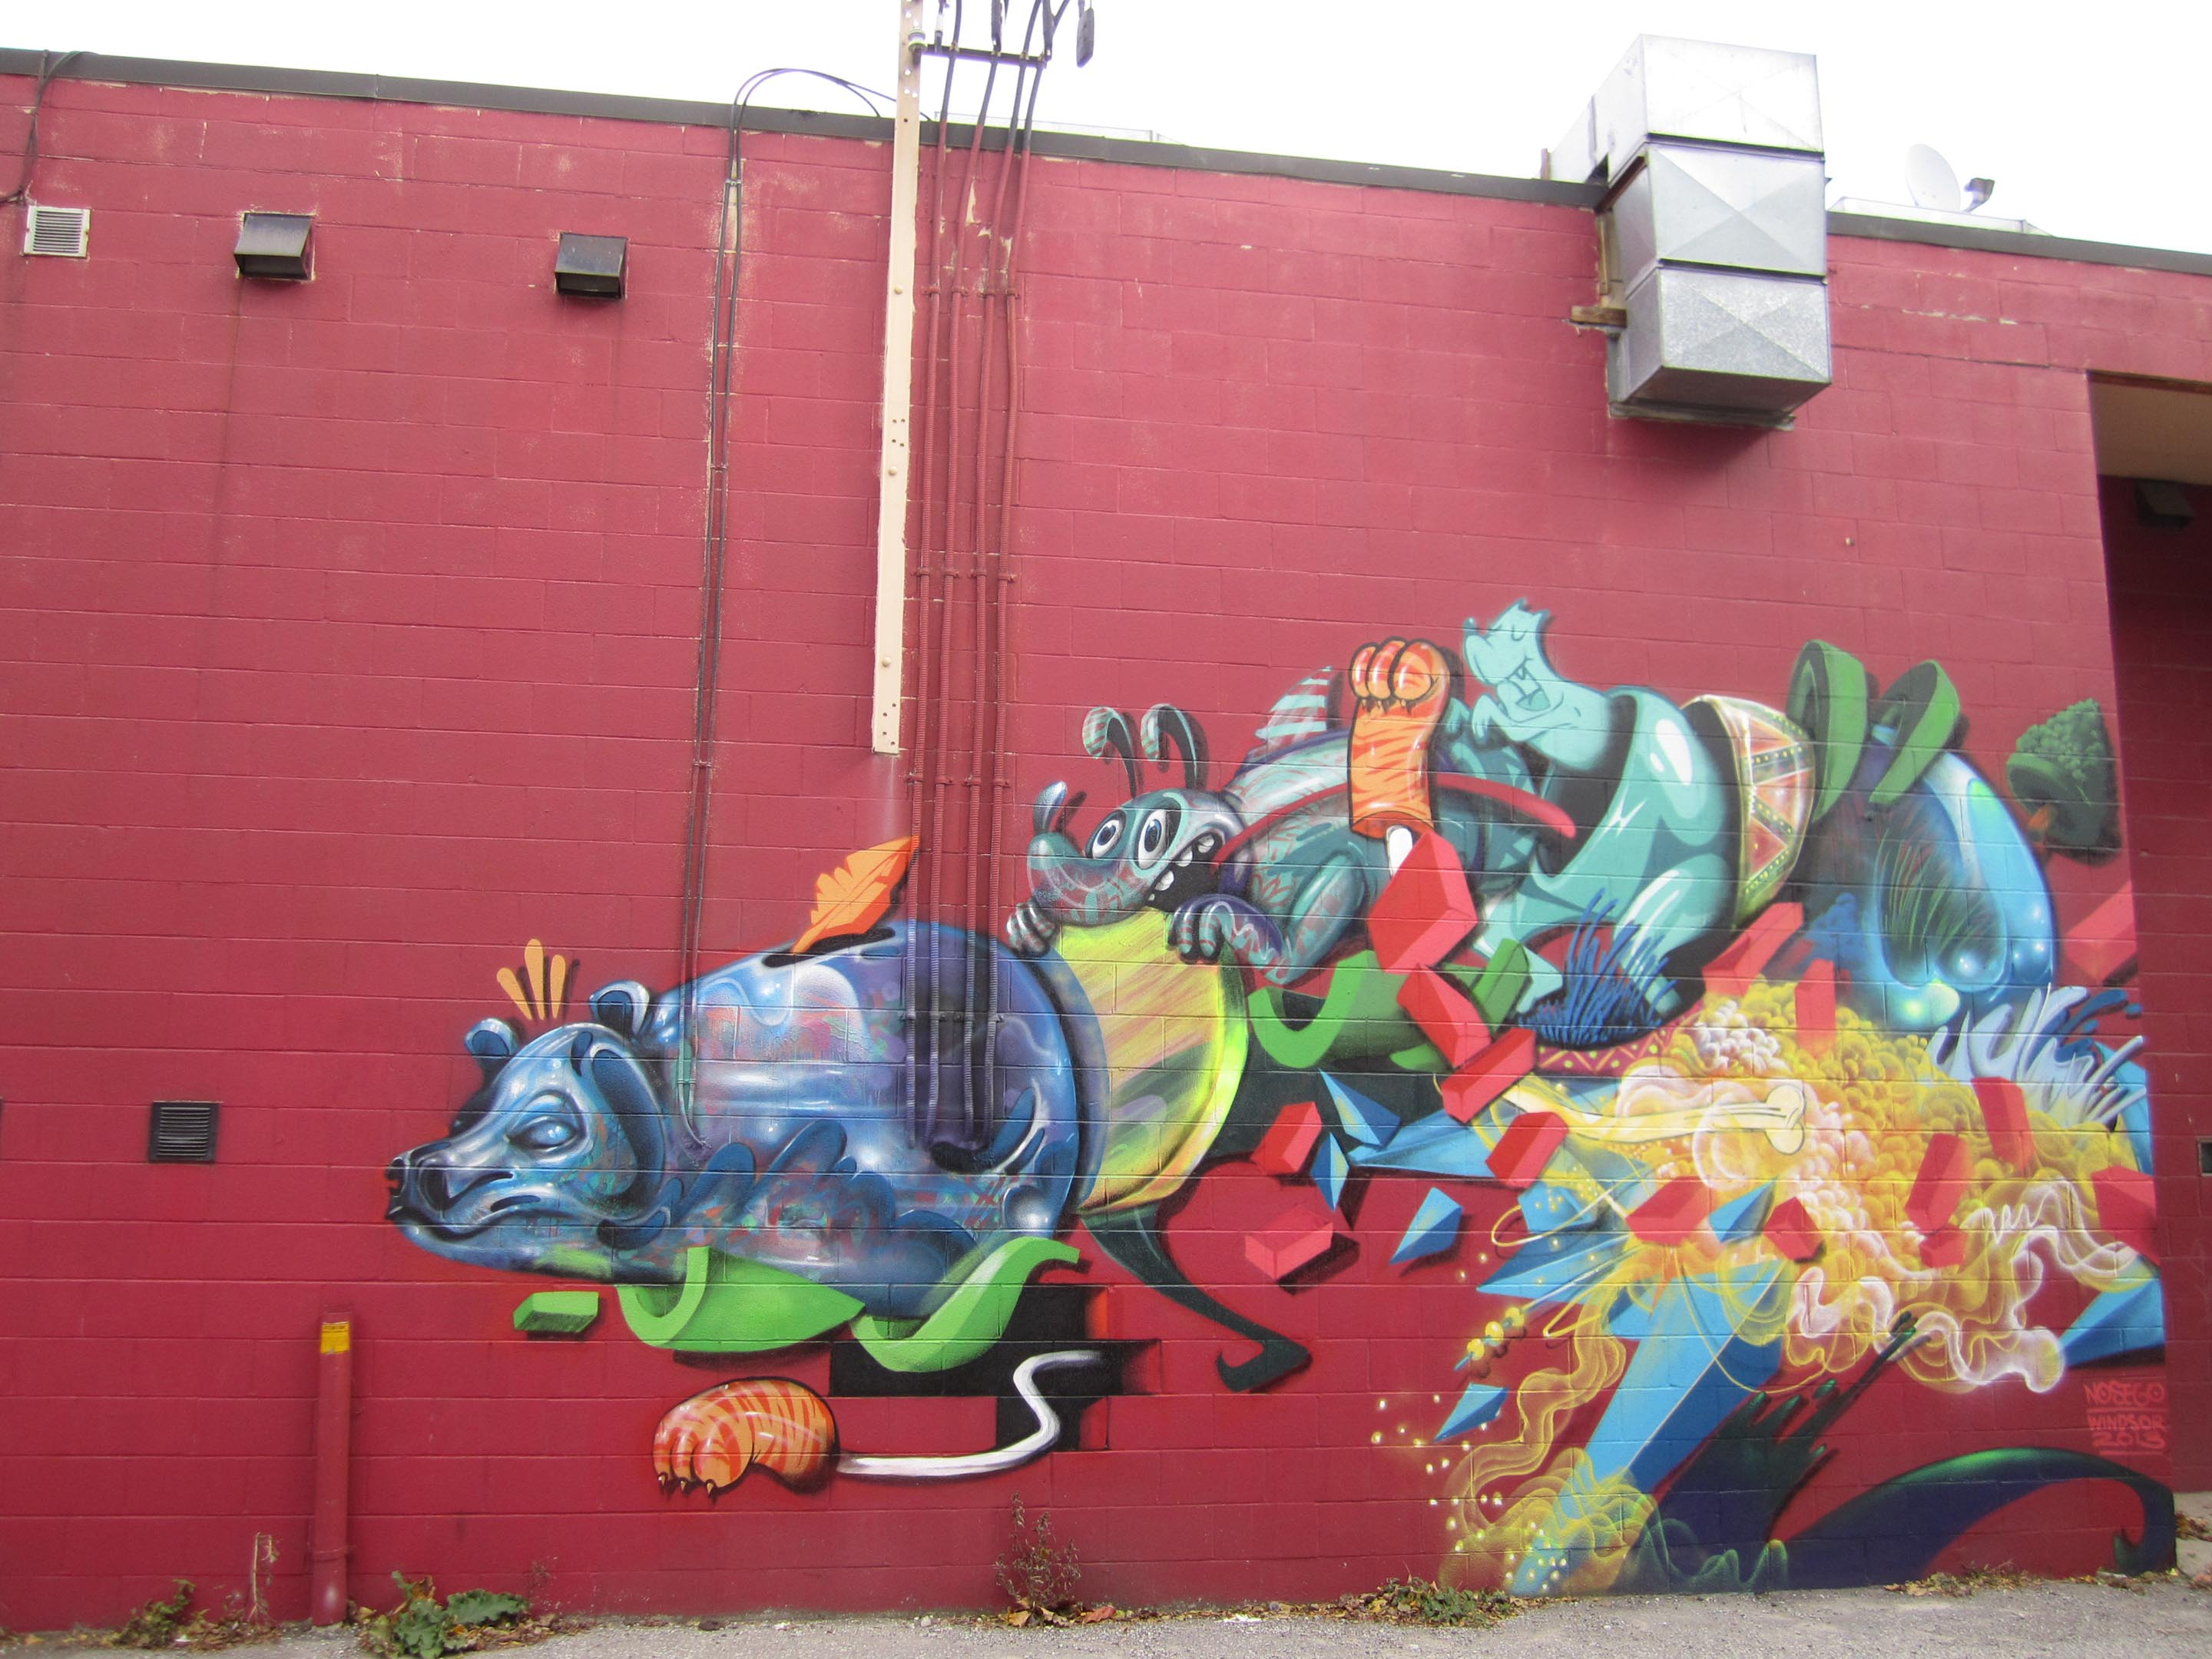 Free 4 All Walls in Windsor, Ontario: NoseGo 1.jpg